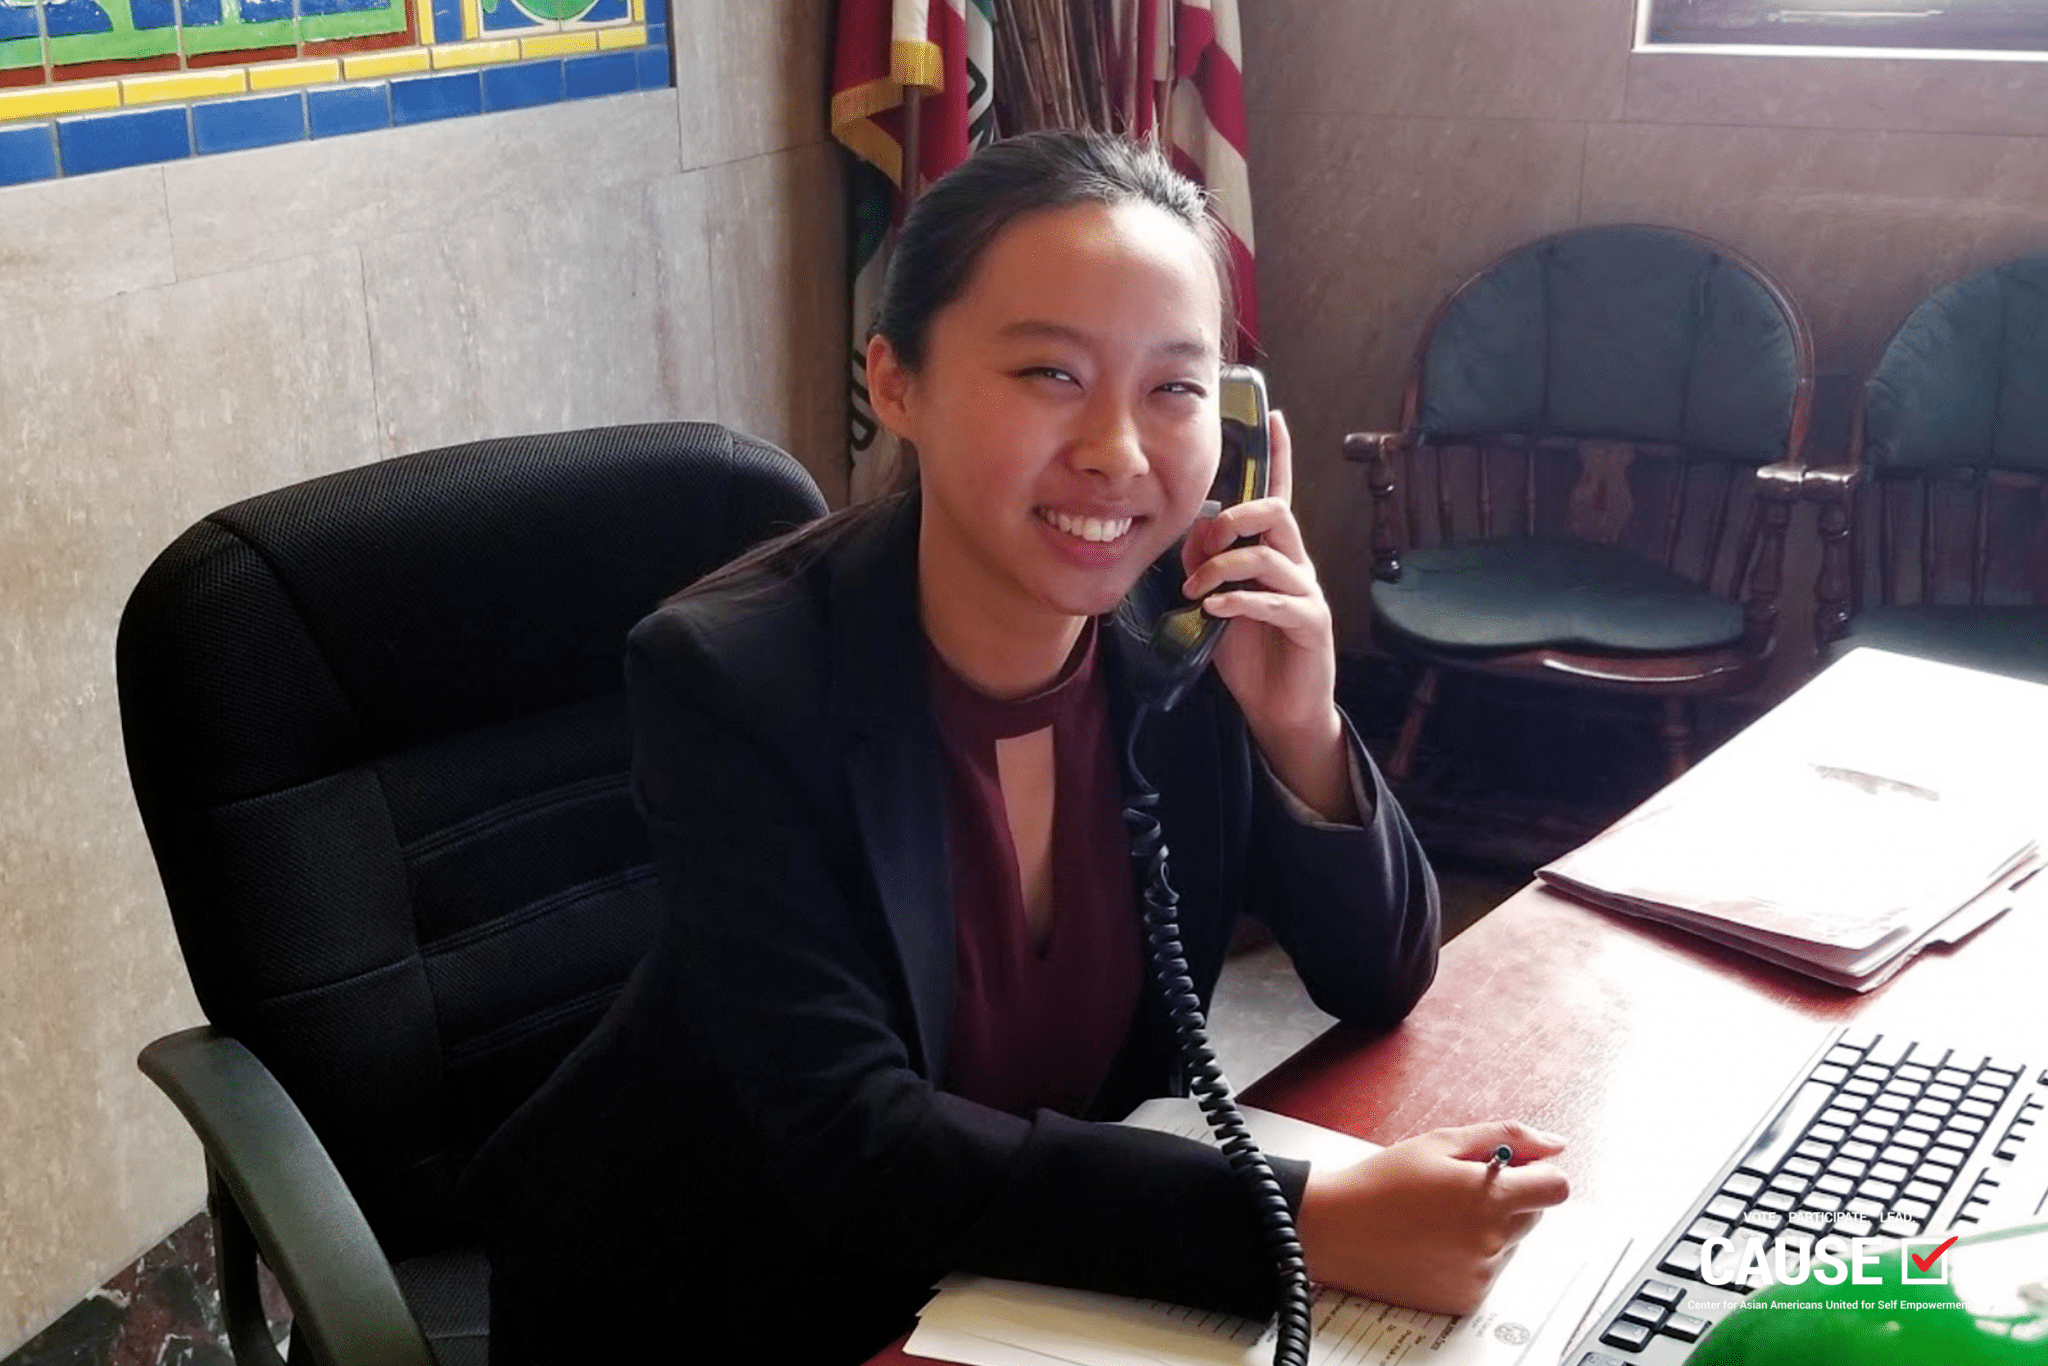 Katherine Hsu answering a call at Los Angeles Mayor Eric Garcetti's Office